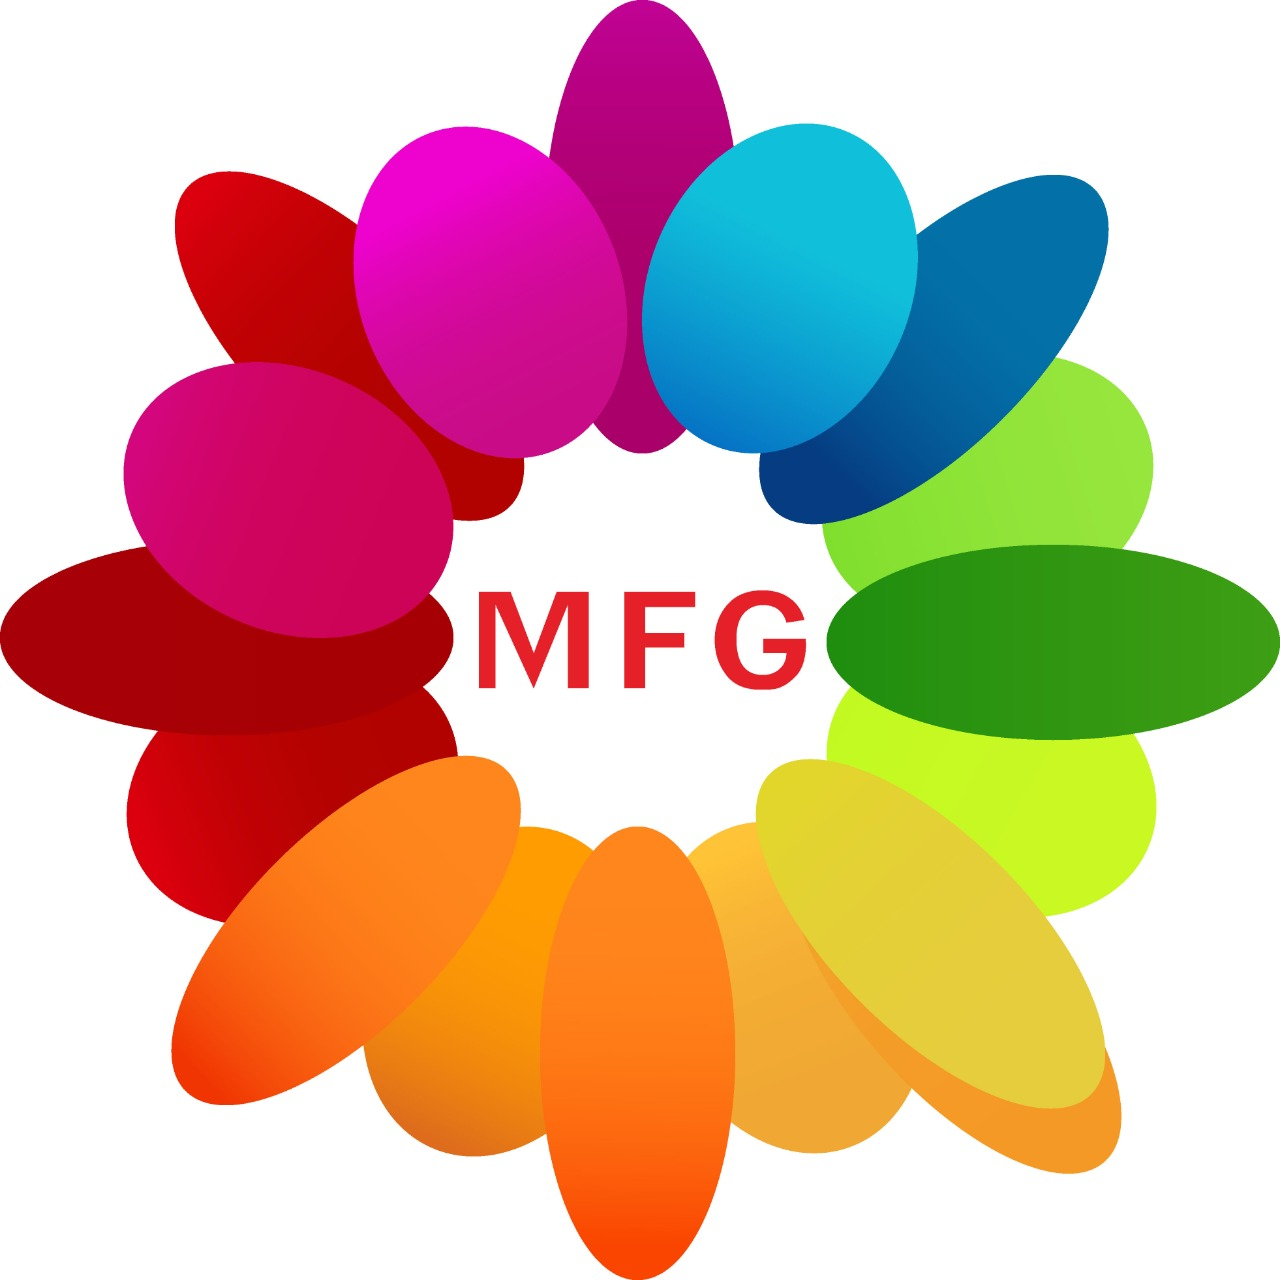 15 red roses with 10 pink carnations arranged in vase